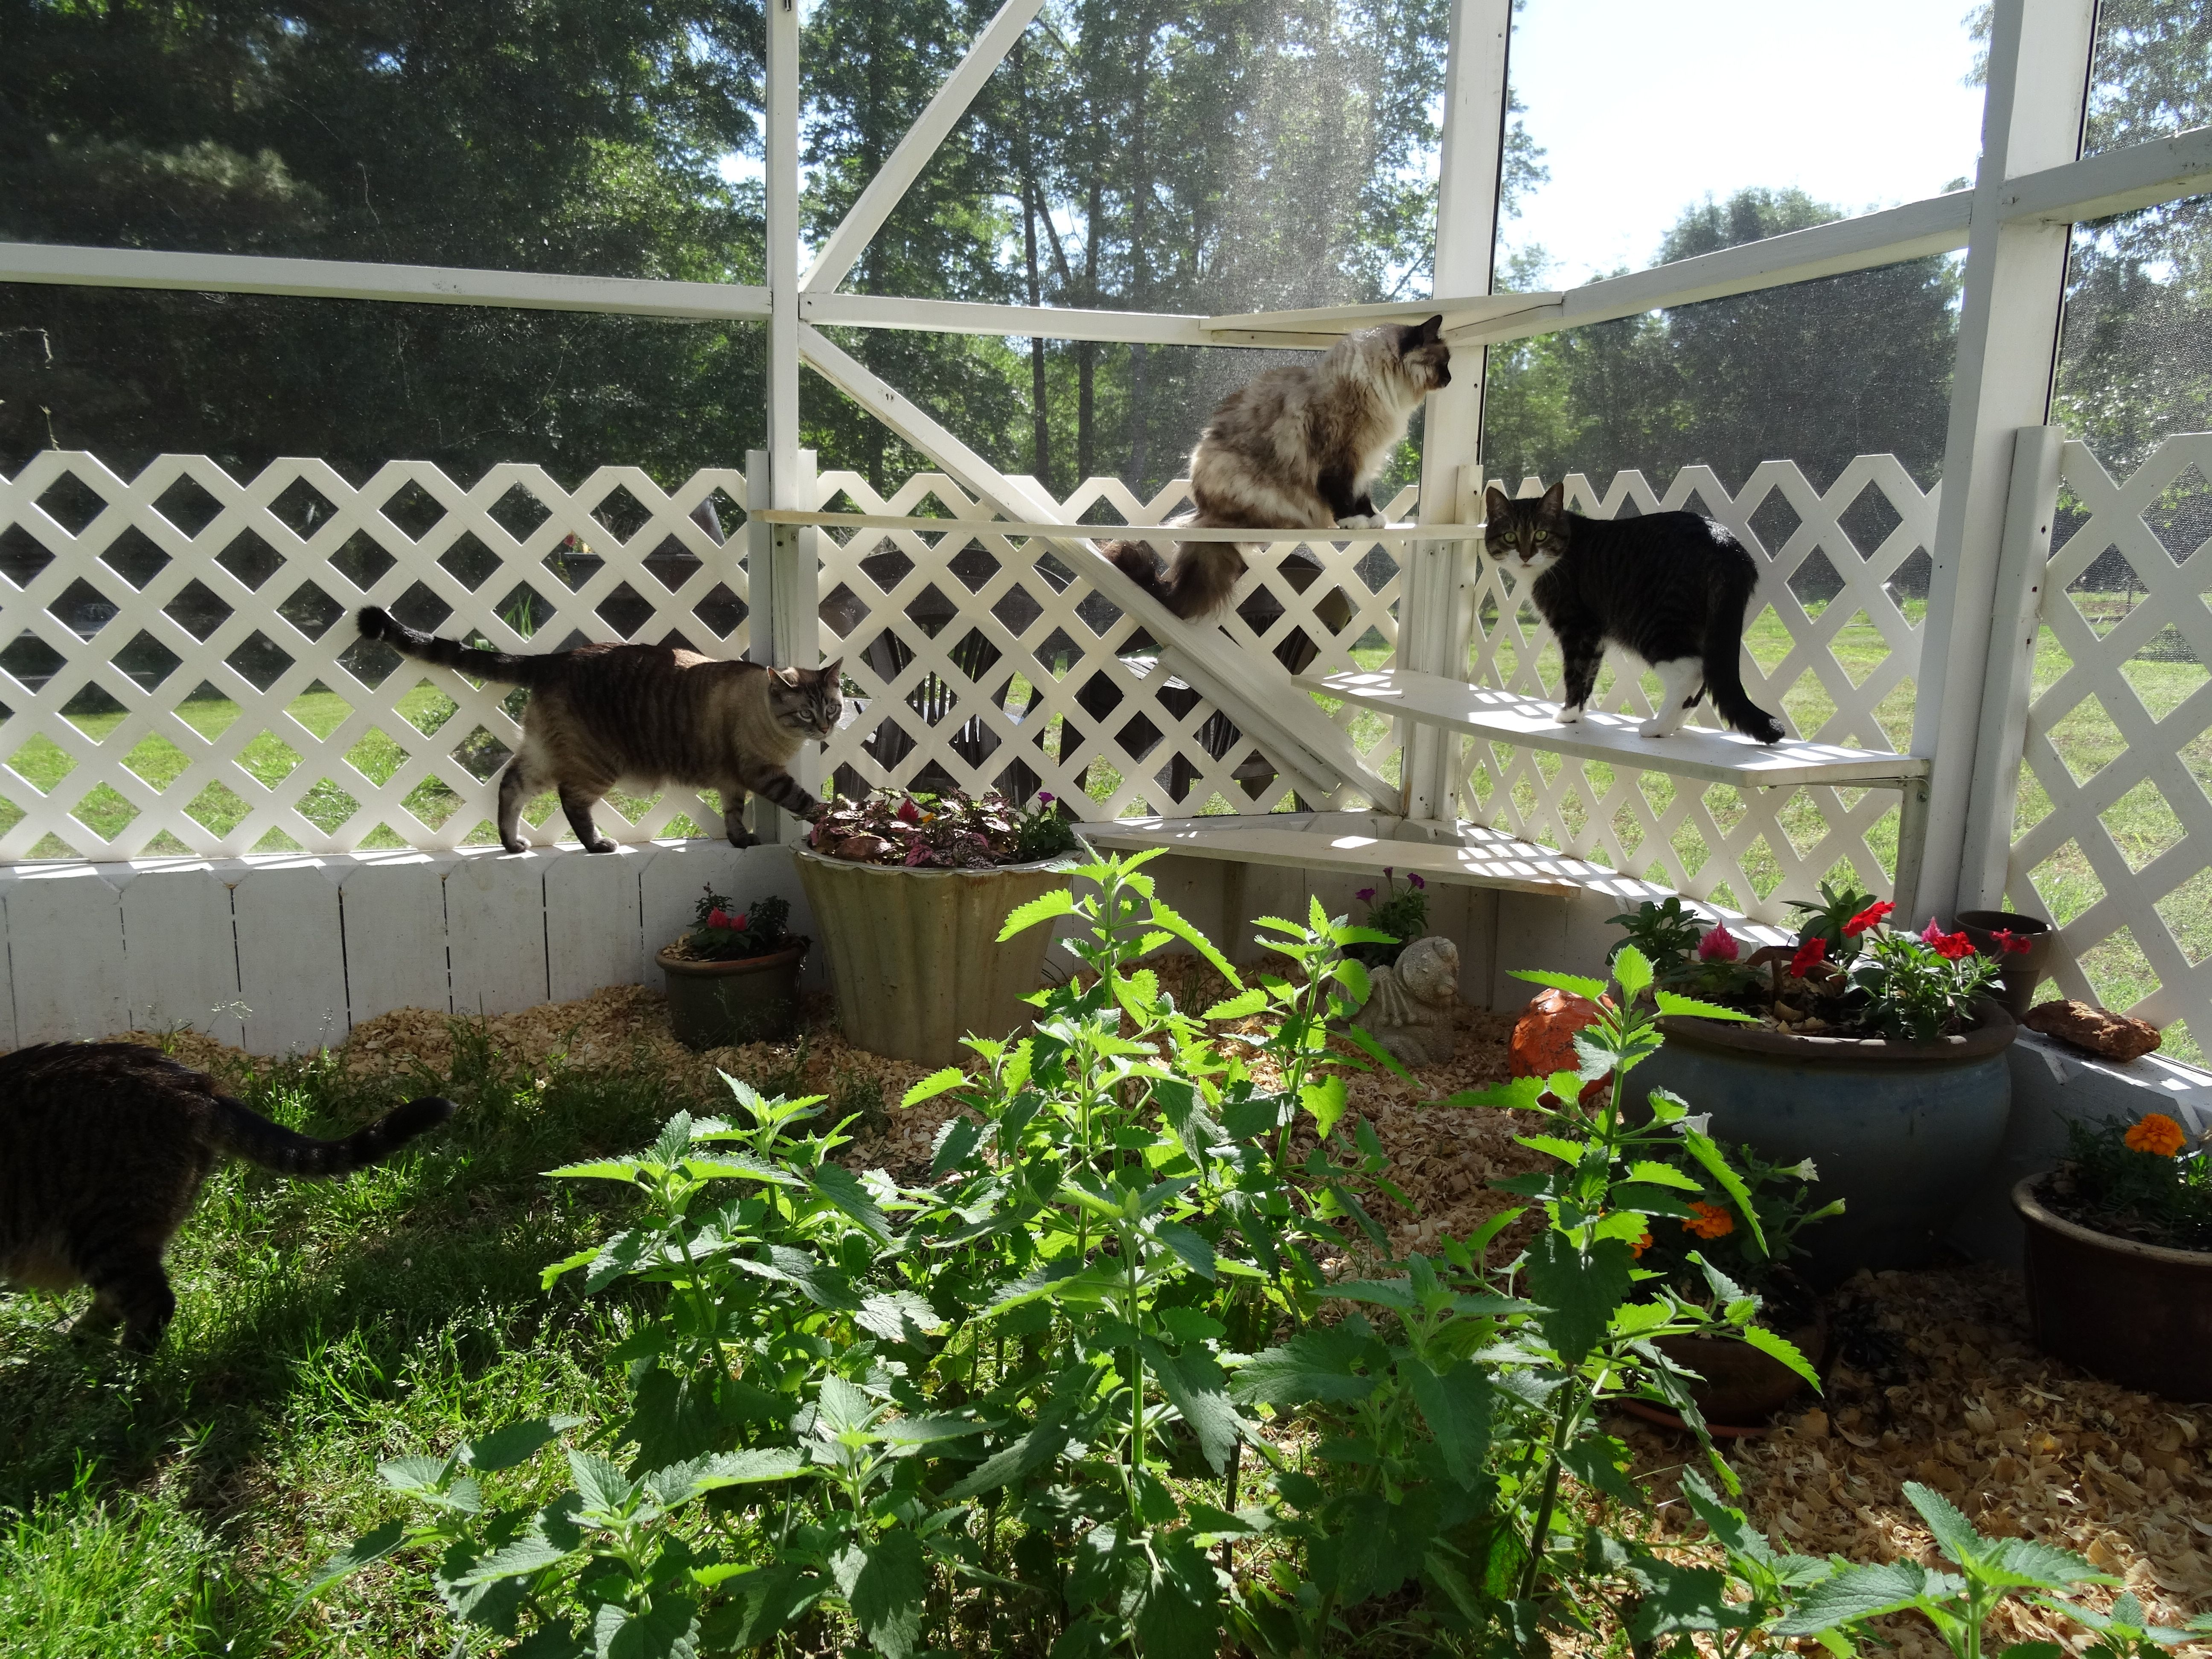 george lucy and daisy enjoying kitty garden catio outdoor